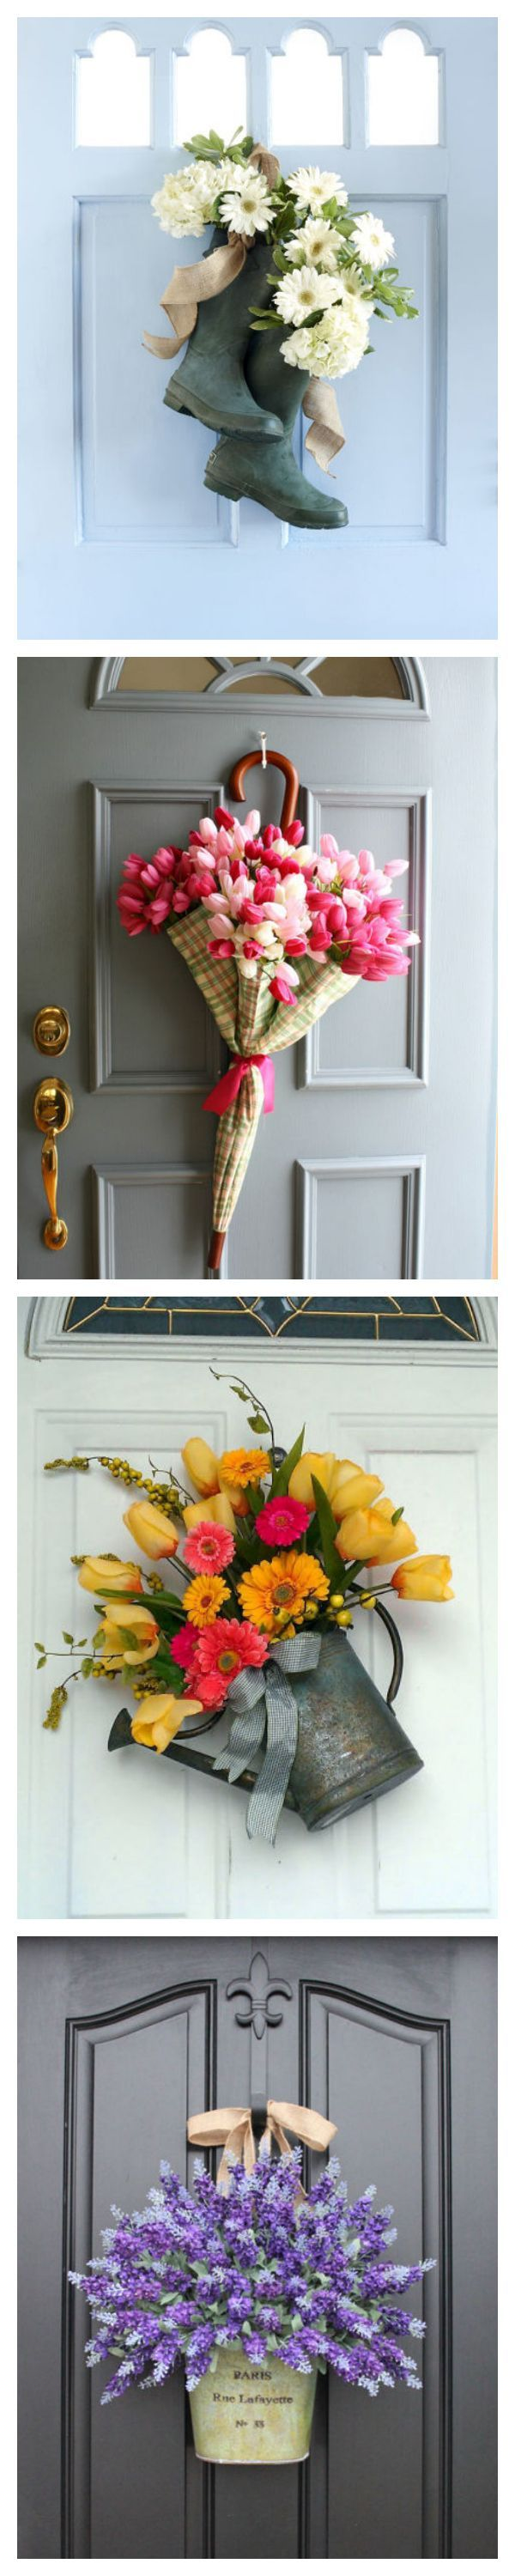 Go Beyond Wreaths with Unusual Door Decorations for Spring #DIY: